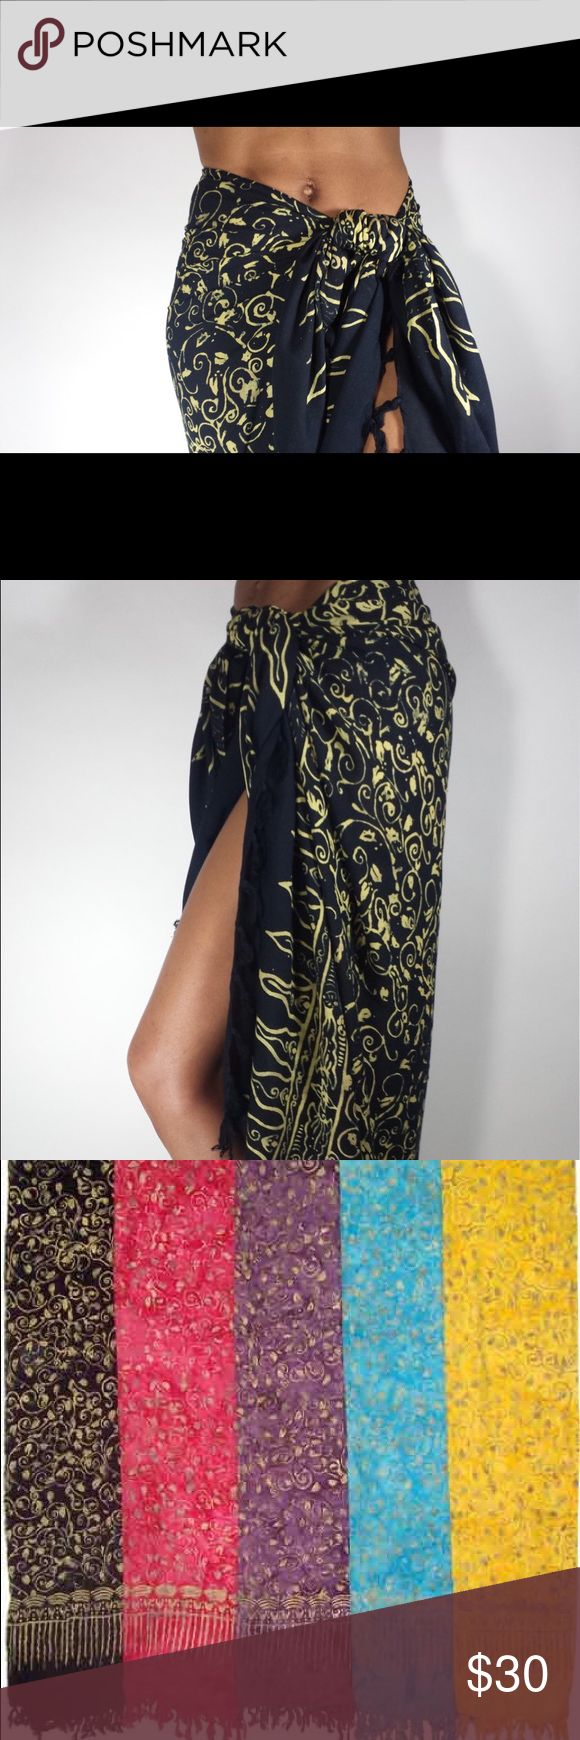 Sarongs, wraps, scarfs for Fall. *Swirl Sarongs These sarongs make beautiful cover ups, bikini wraps, scarfs for any weather, dresses, tops, head wraps, skirts, wrap pants, baby accessory or wrap.  Other uses: A layout for the beach, wall hangings,curtains, table cloths, a throw and chair covers  Details: 100% Rayon Machine Wash Cold  Wash Details: Sarongs wash easily by hand or machine. Strongly suggested to hang to dry for lifetime wear. Wash separately the first time or two.  *Black is…